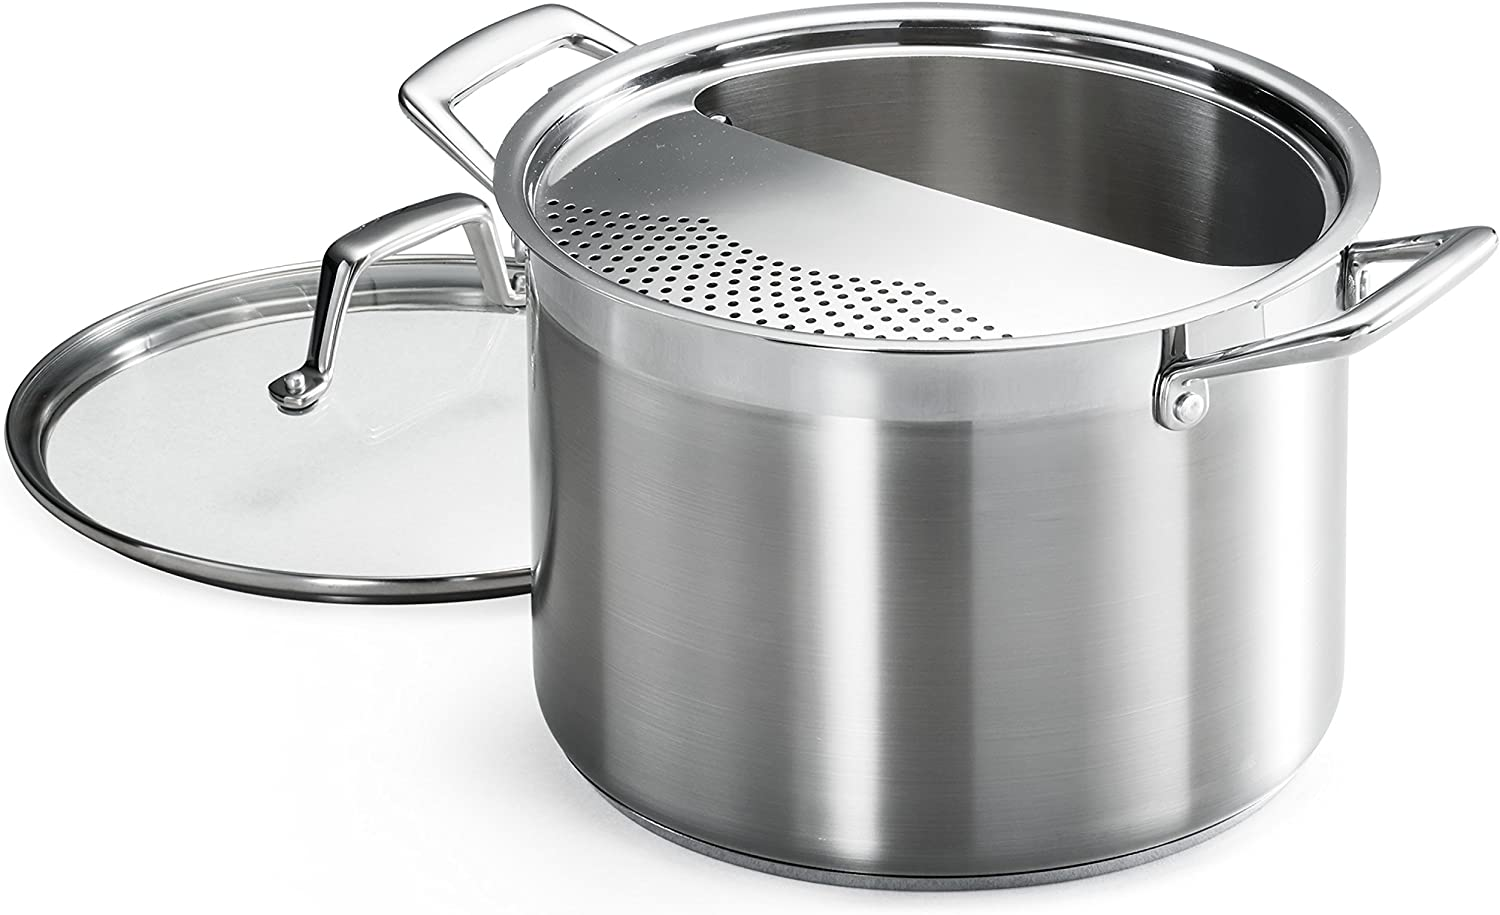 Tramontina 80120/509DS Lock & Drain Pasta Cooker Pot with Strainer Lid, 18/8 Stainless Steel, Induction-Ready, Impact-Bonded, 8-Quart